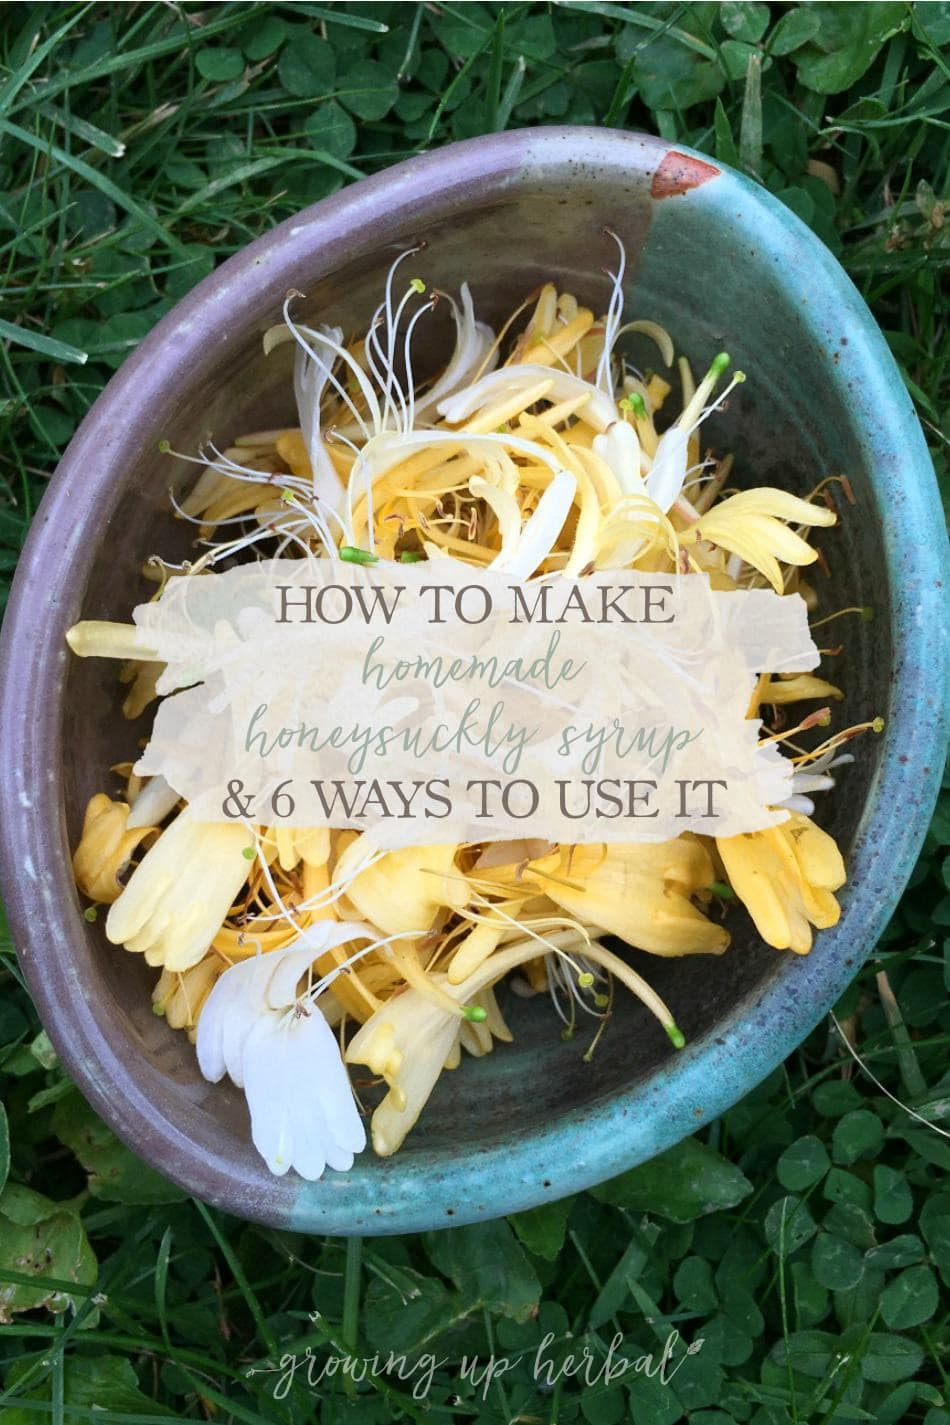 How To Make Homemade Honeysuckle Syrup & 6 Ways To Use It